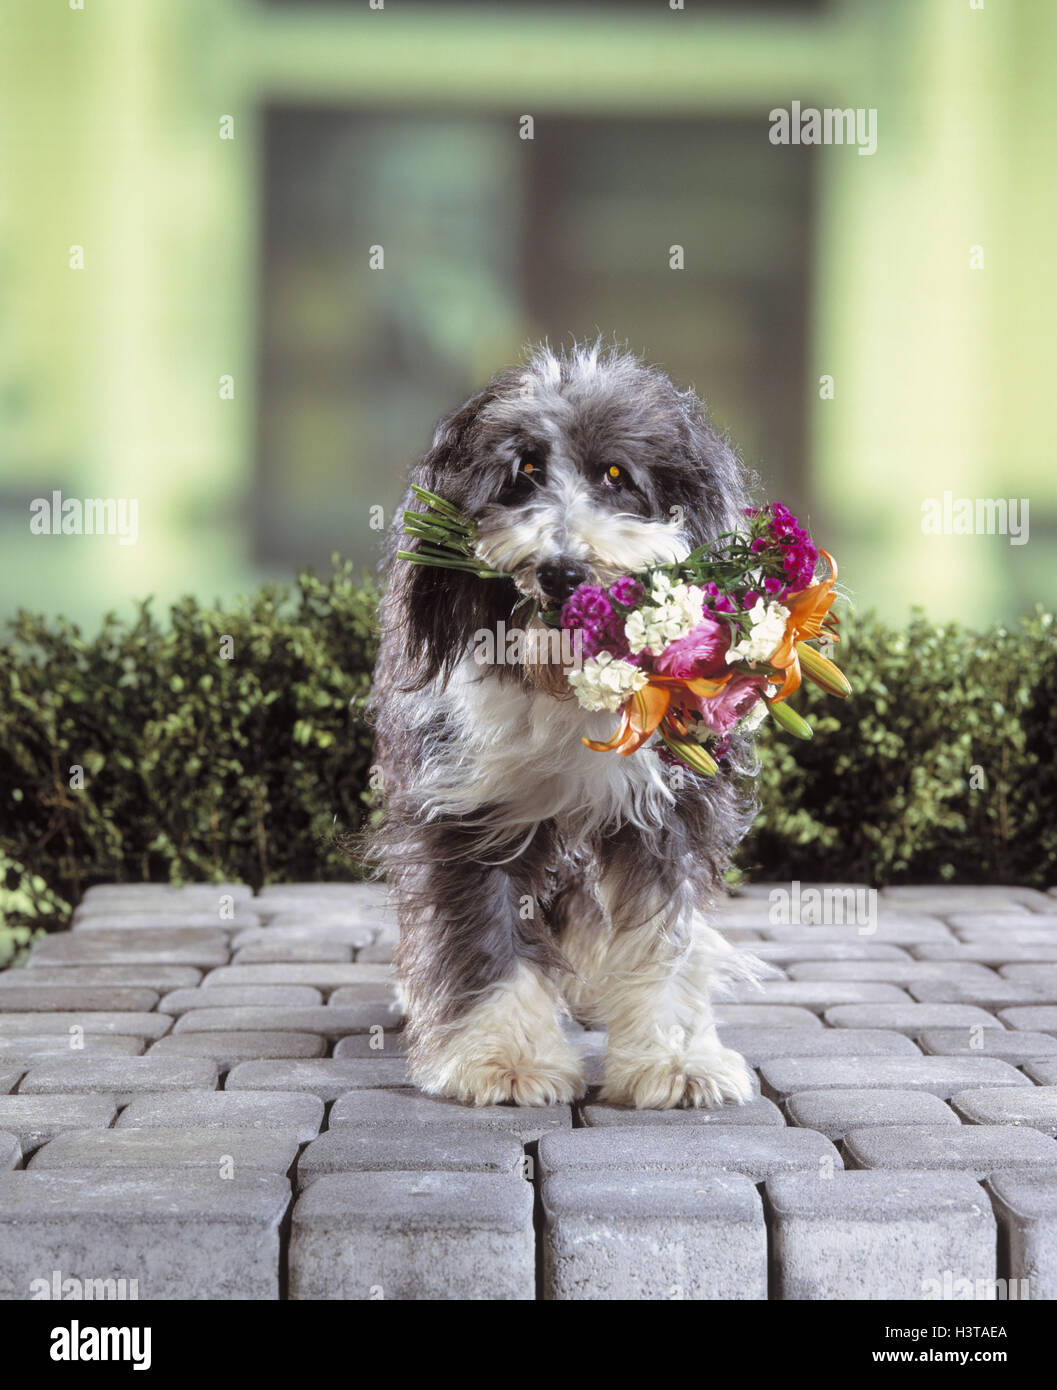 Dog Bouquet Not Freely For Calendar Mkrb Animals Pets Hybrid